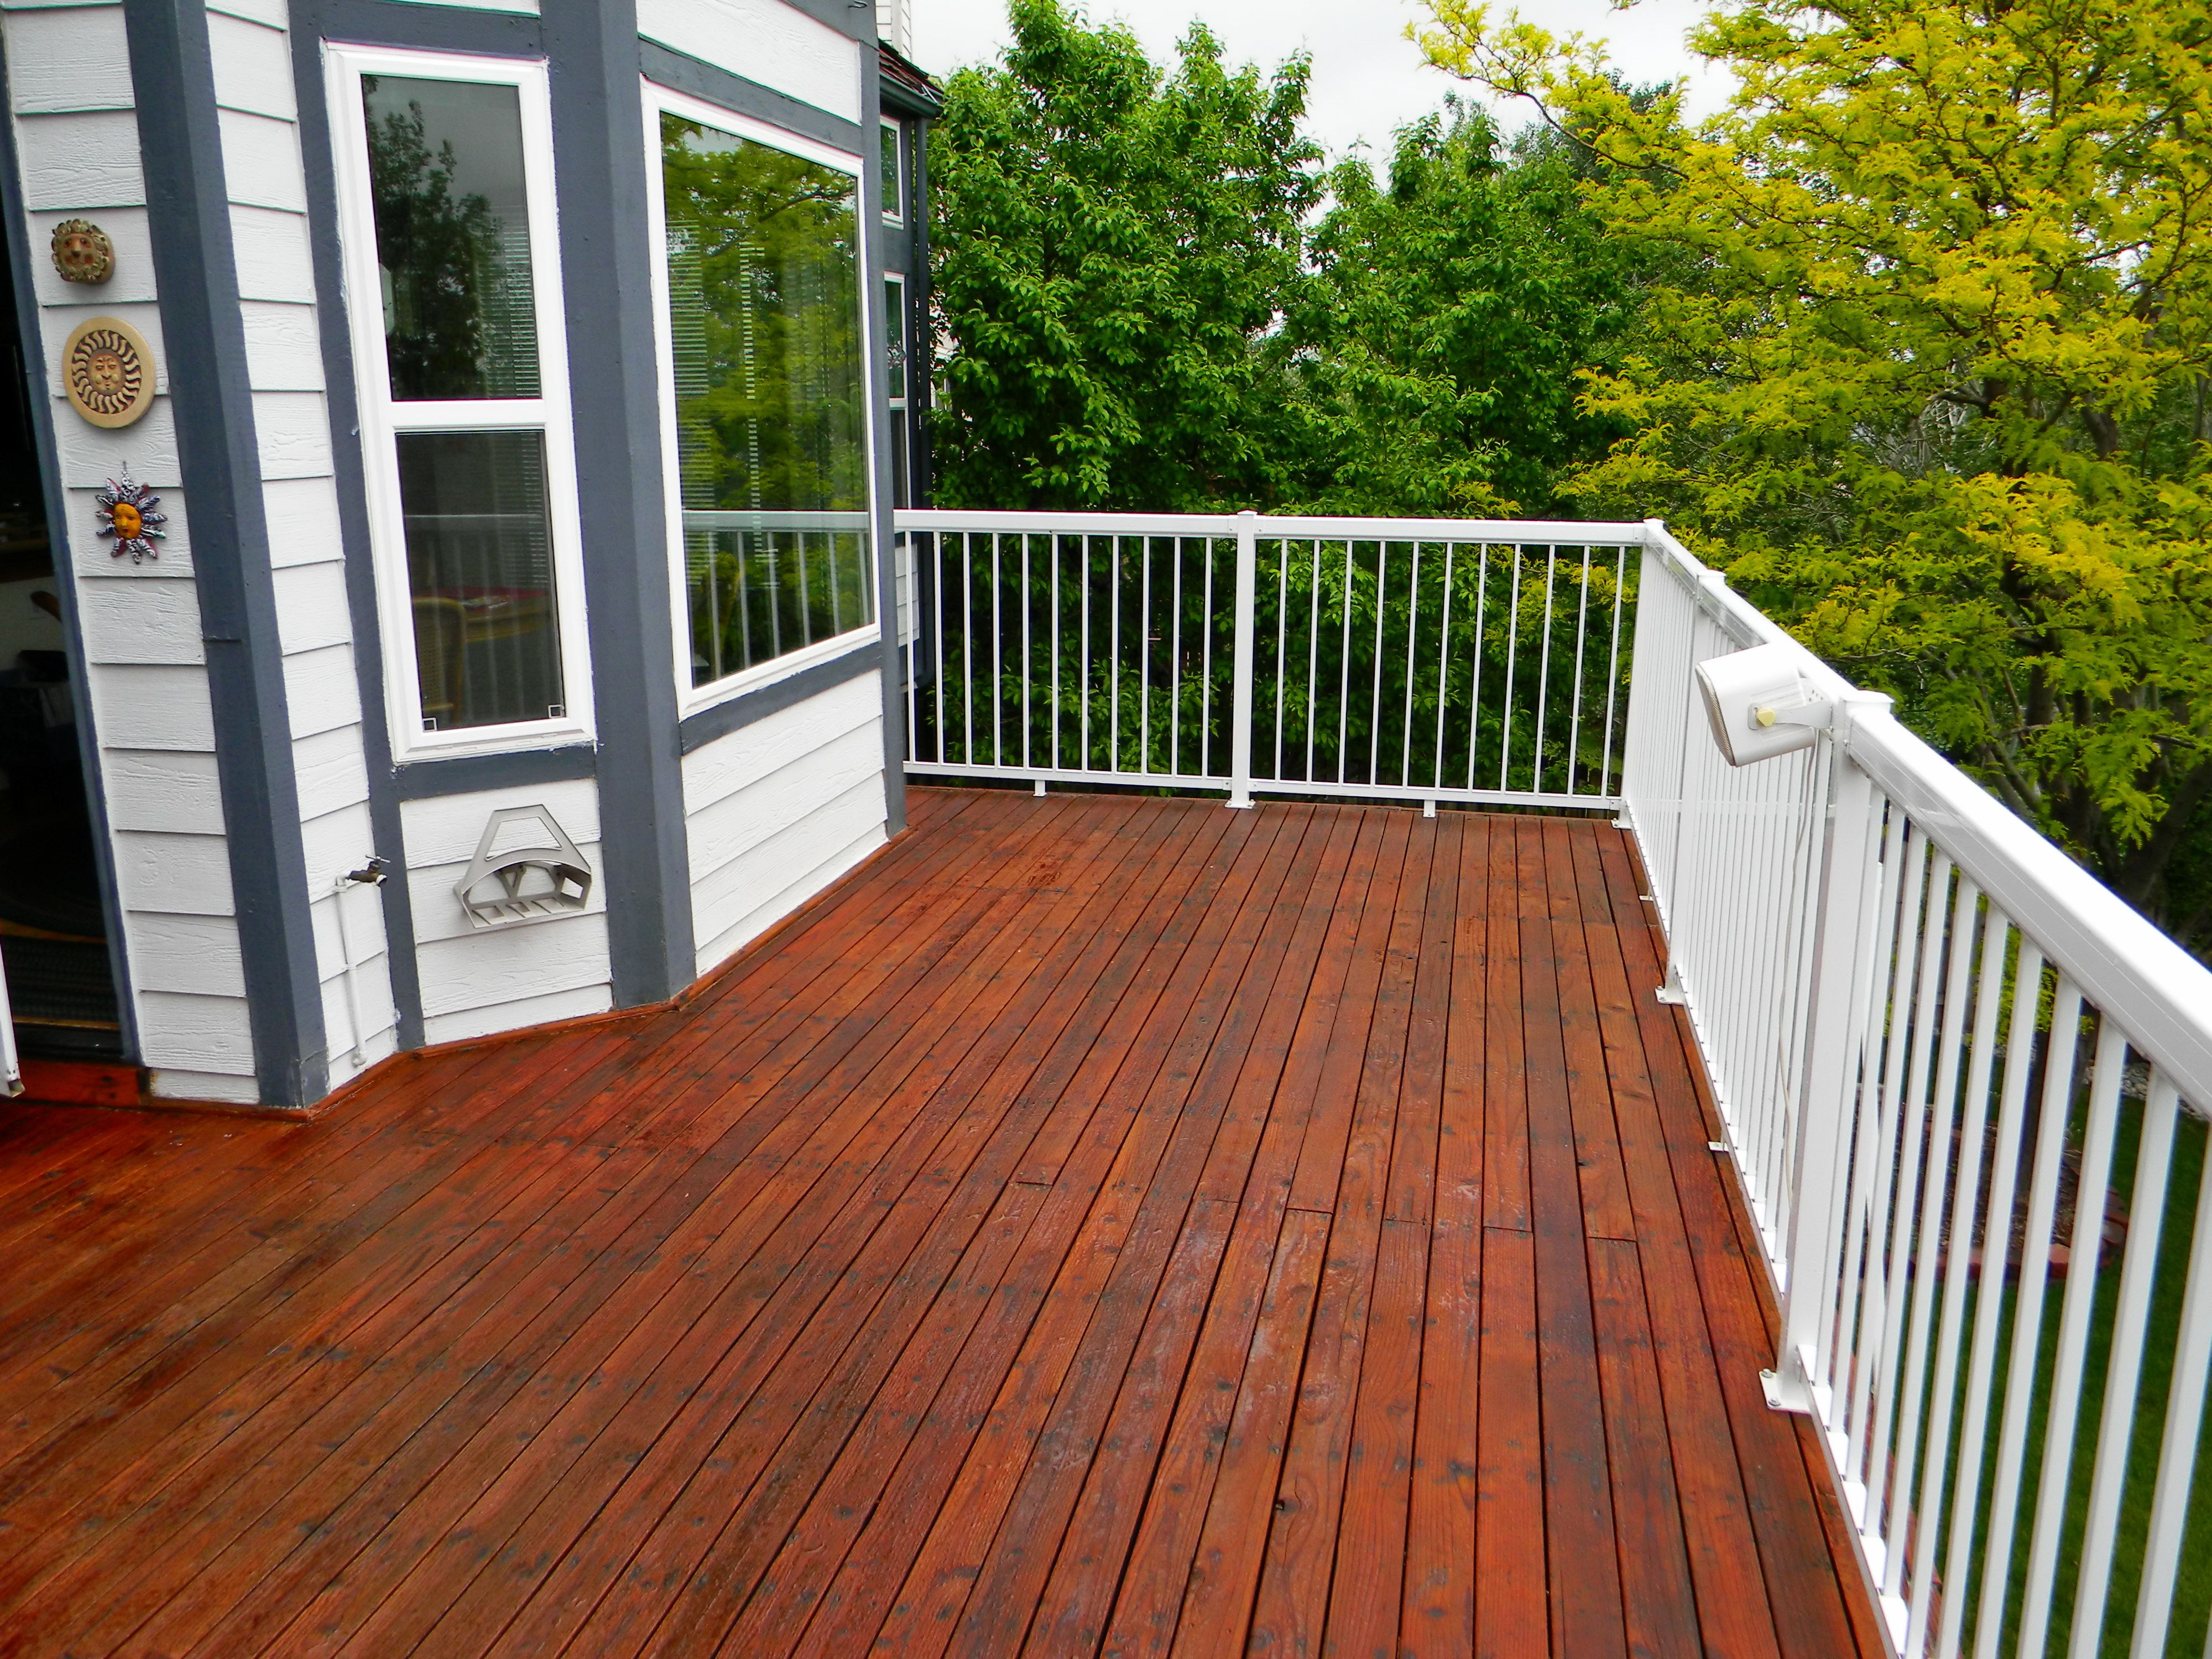 Refinished Deck Stained With Ready Seal Mahogany Outdoor Deck